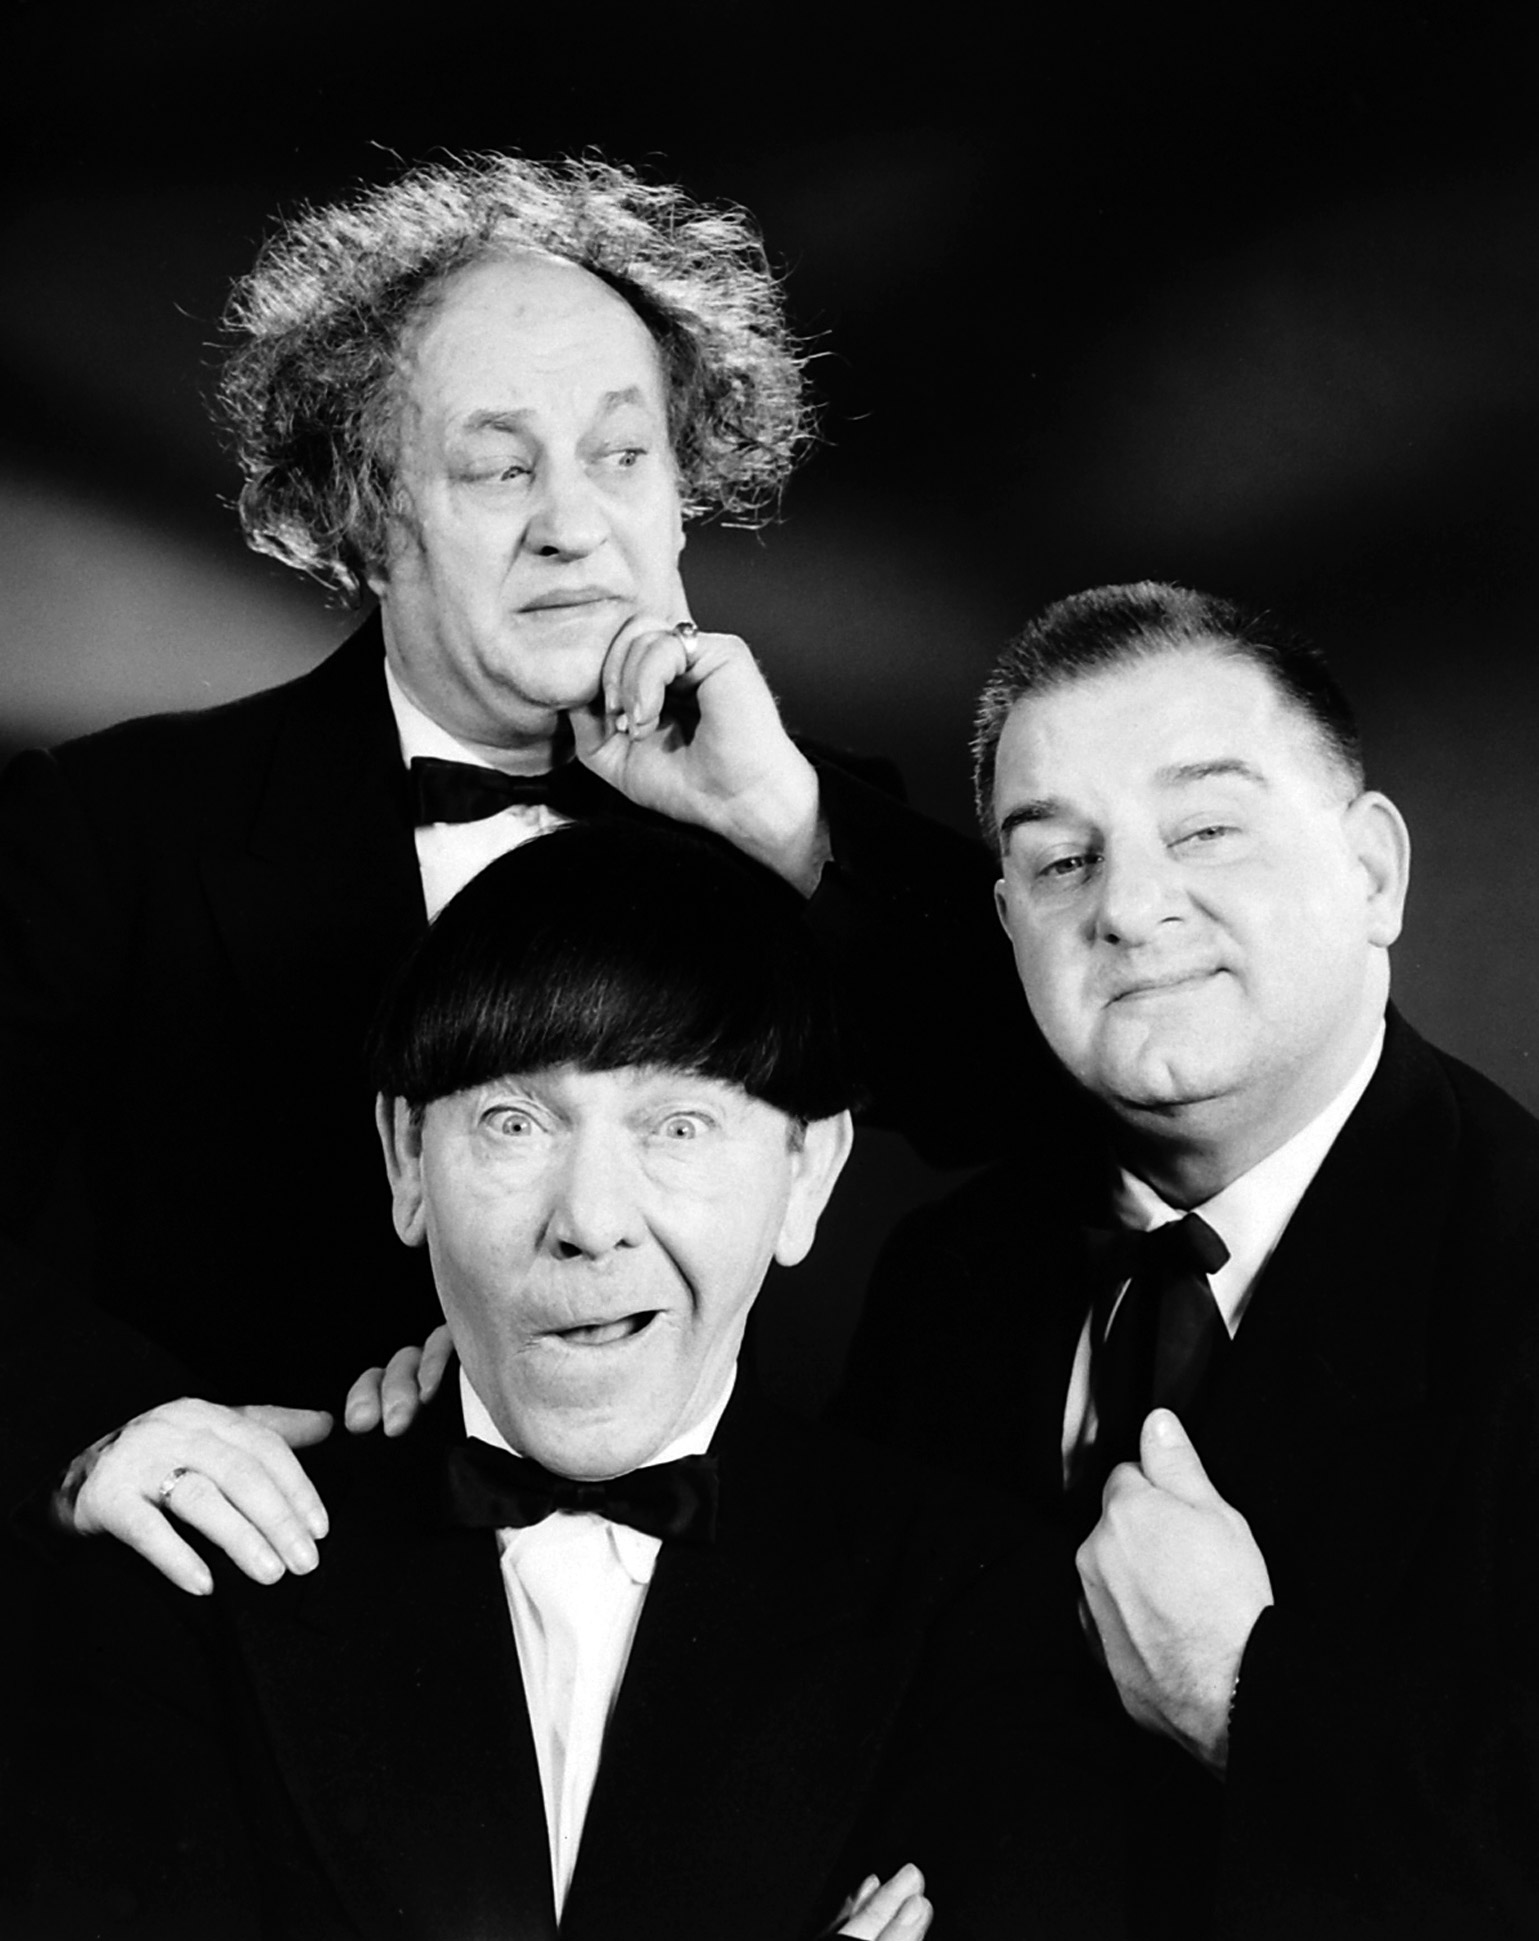 Practice hijinks with two friends and go as the Three Stooges (clockwise from left): Curly Joe DeRita, Moe Howard and Larry Fine, 1959.